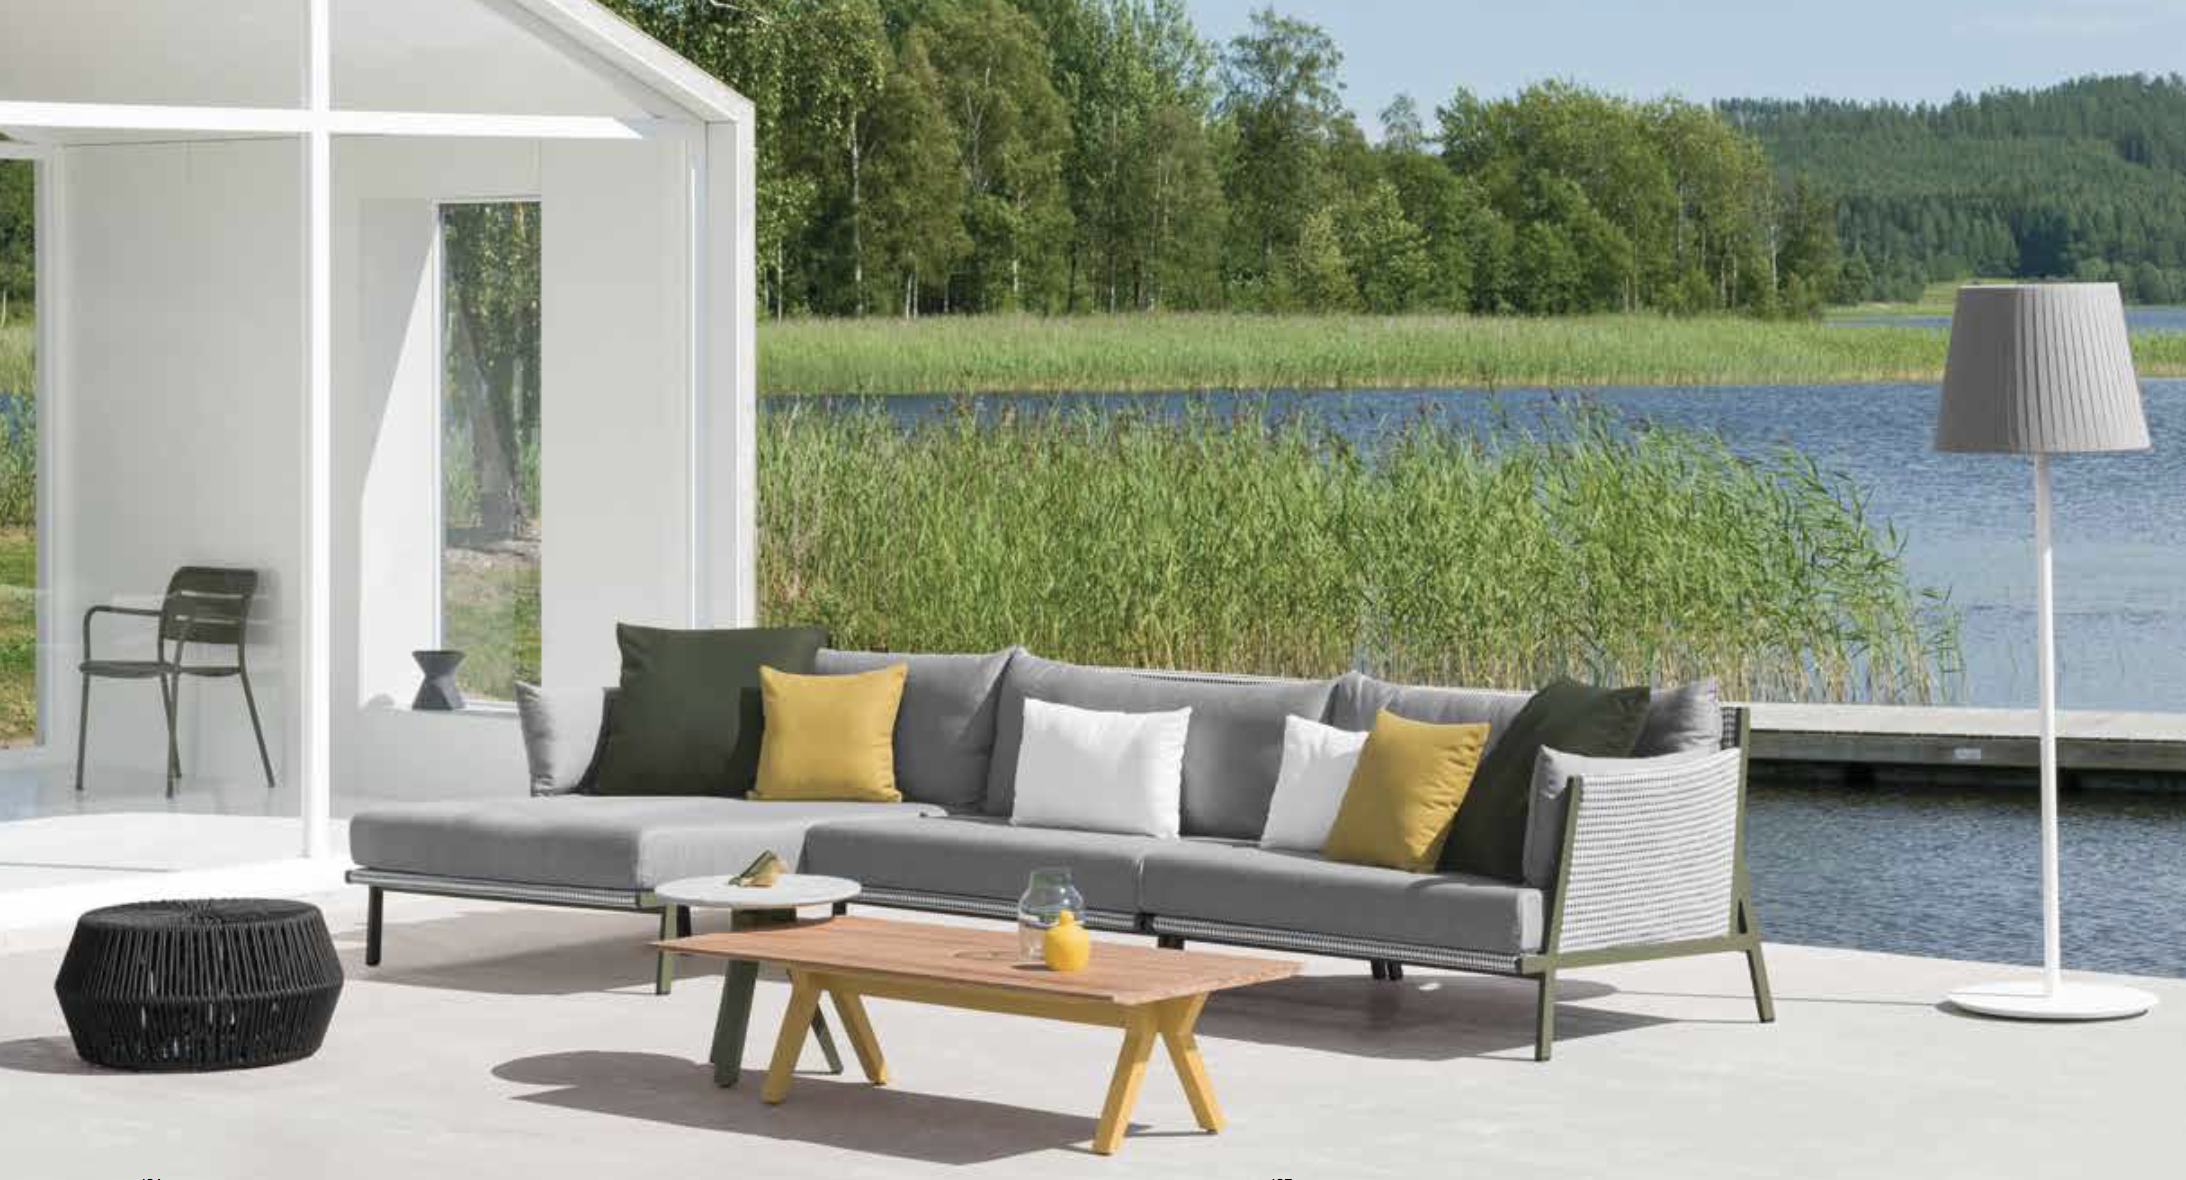 Viaqes Sofa outdoor-Kett